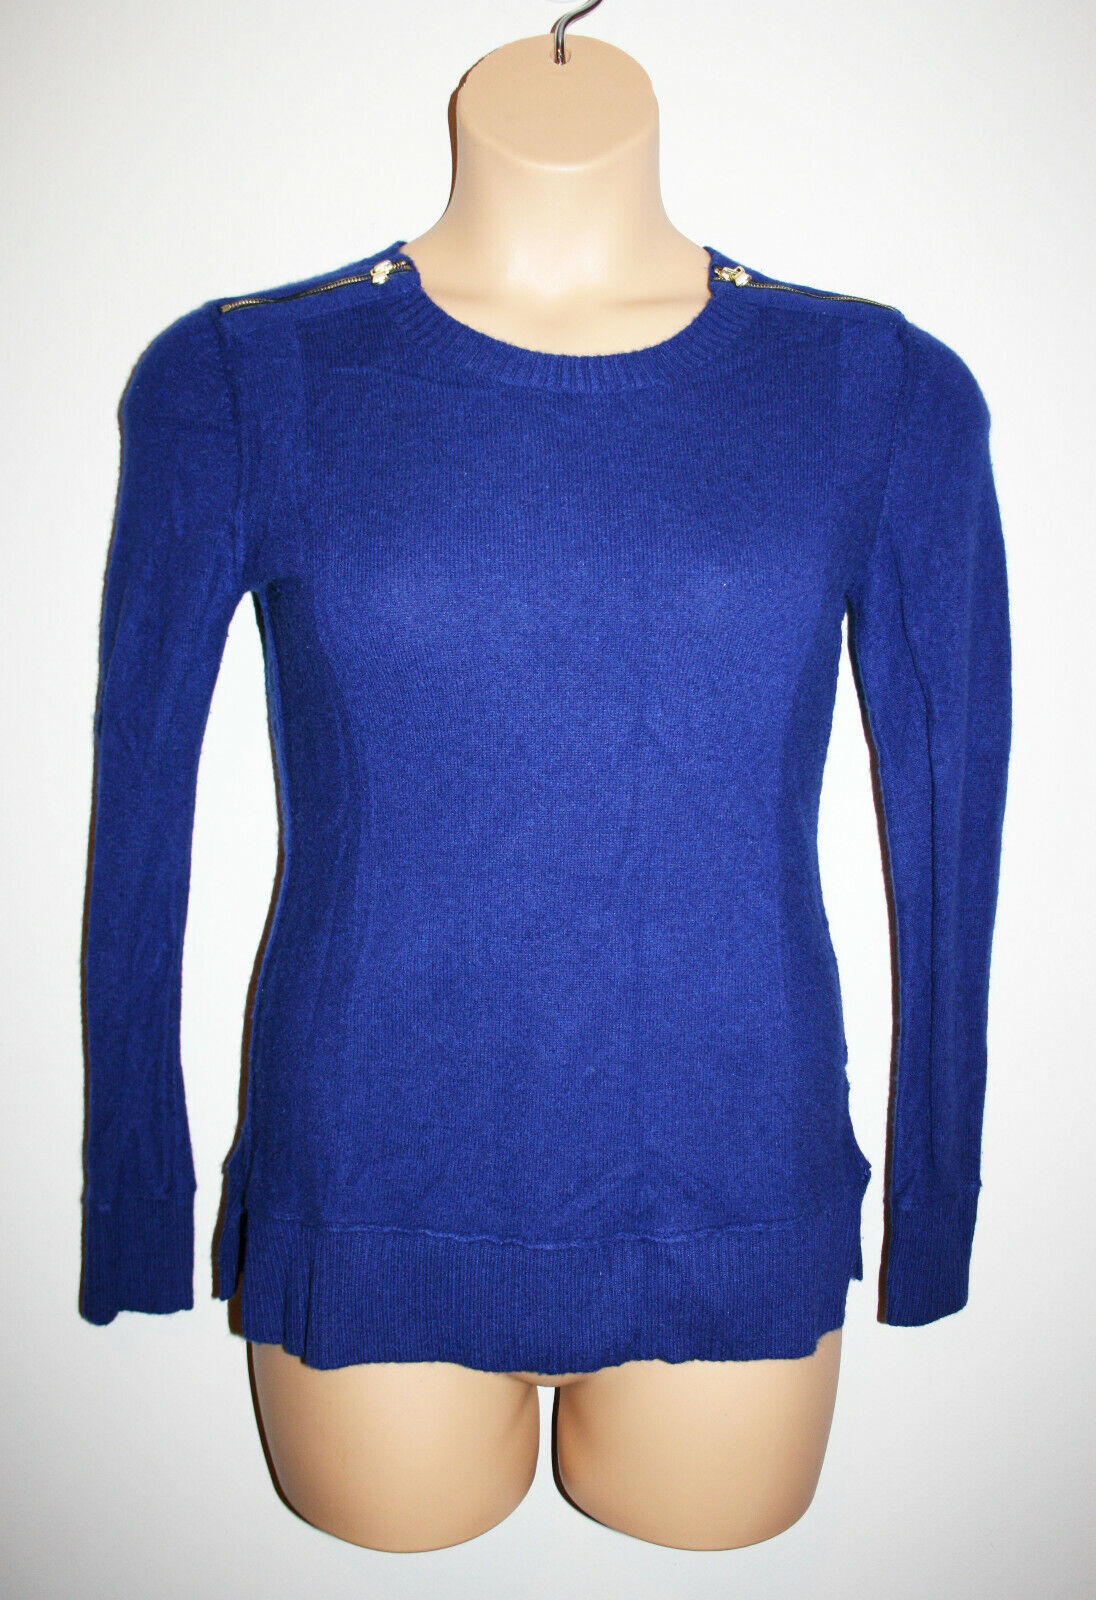 Womens SAKS FIFTH AVE Cobalt bluee Cashmere Sweater Long Sleeve Zippers Small S